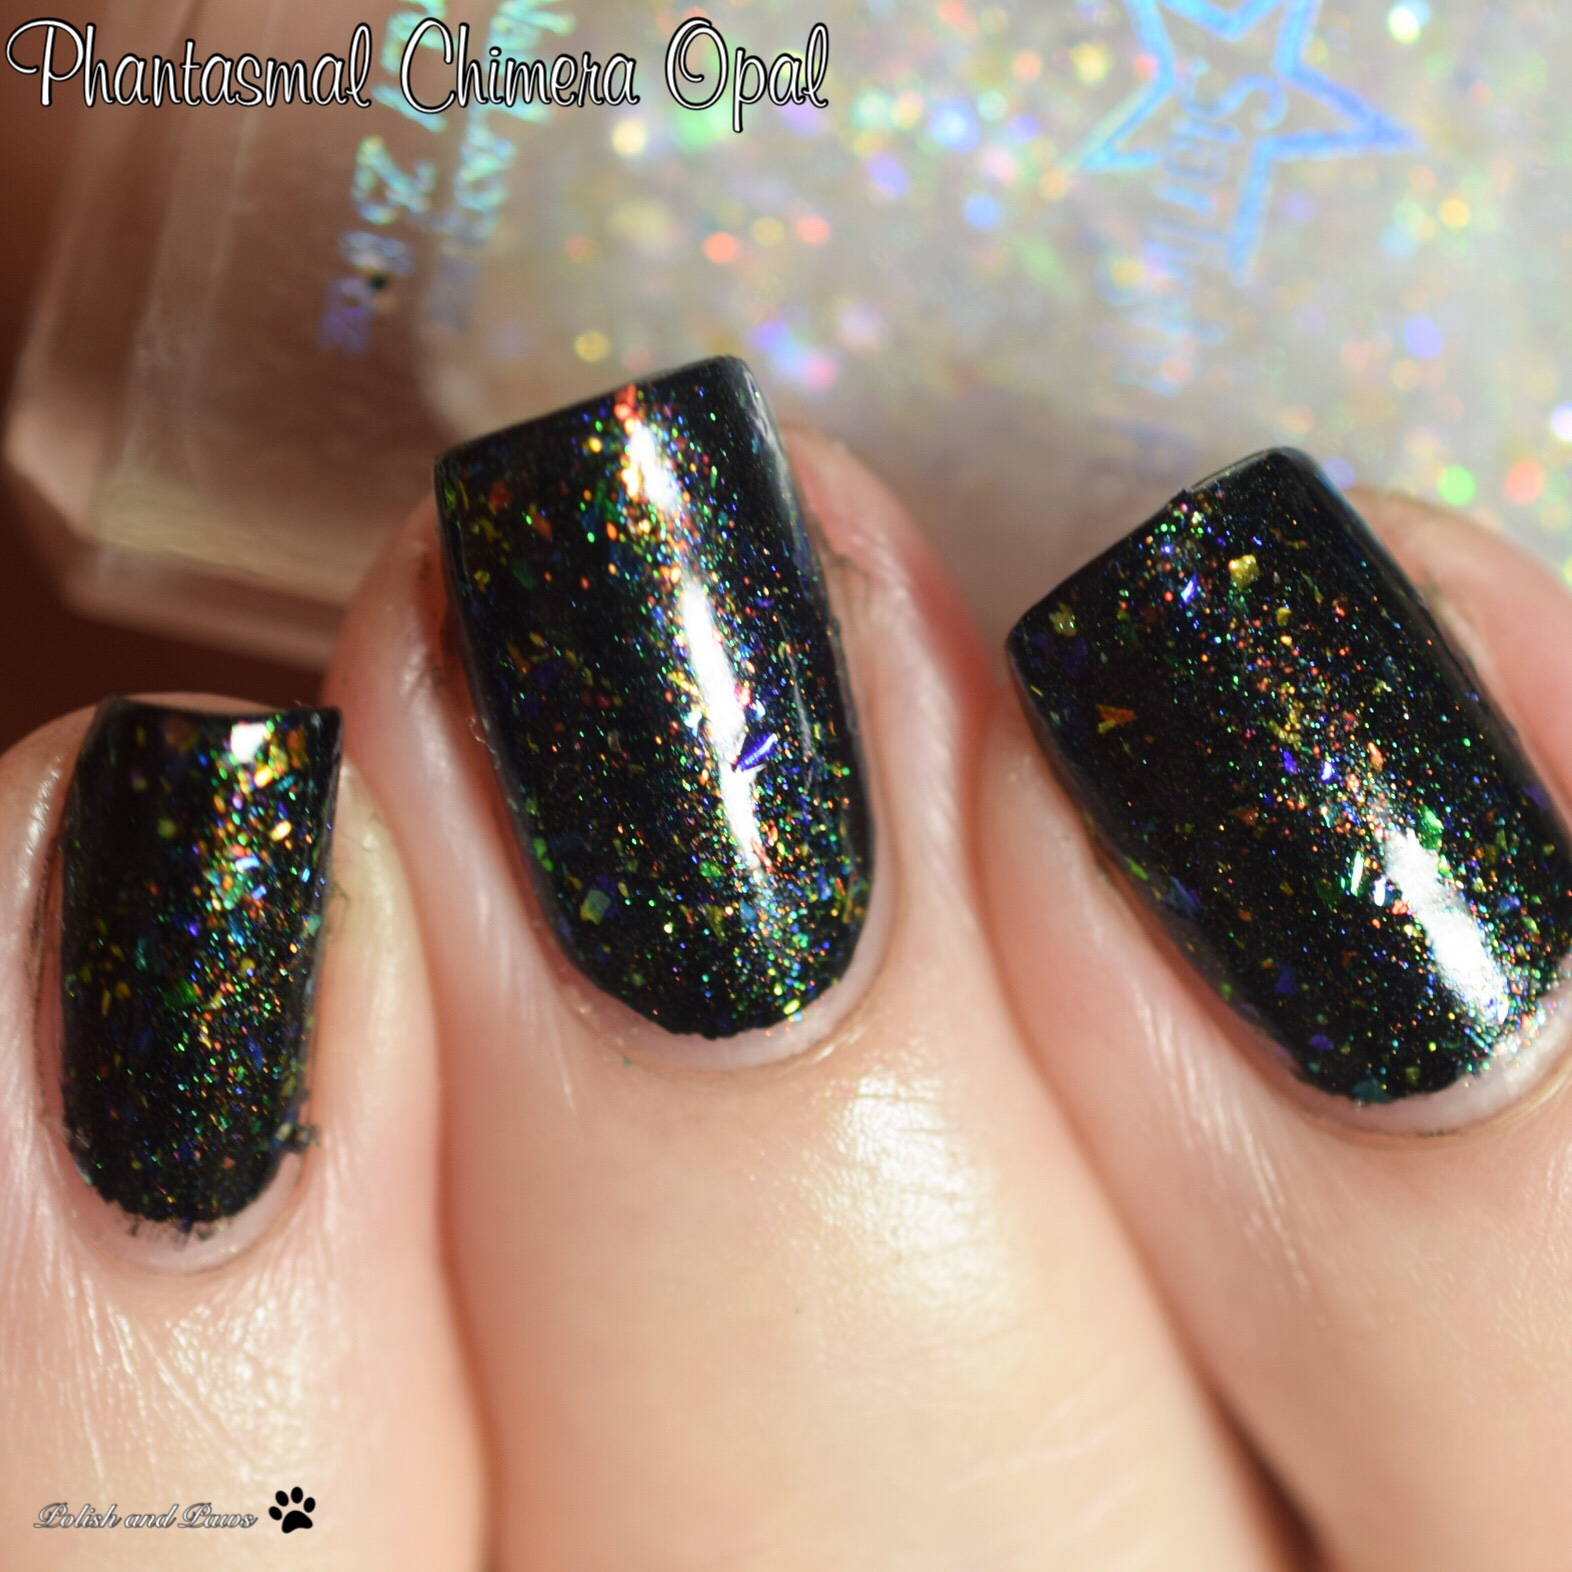 Starlight Polish Phantasmal Chimera Opal